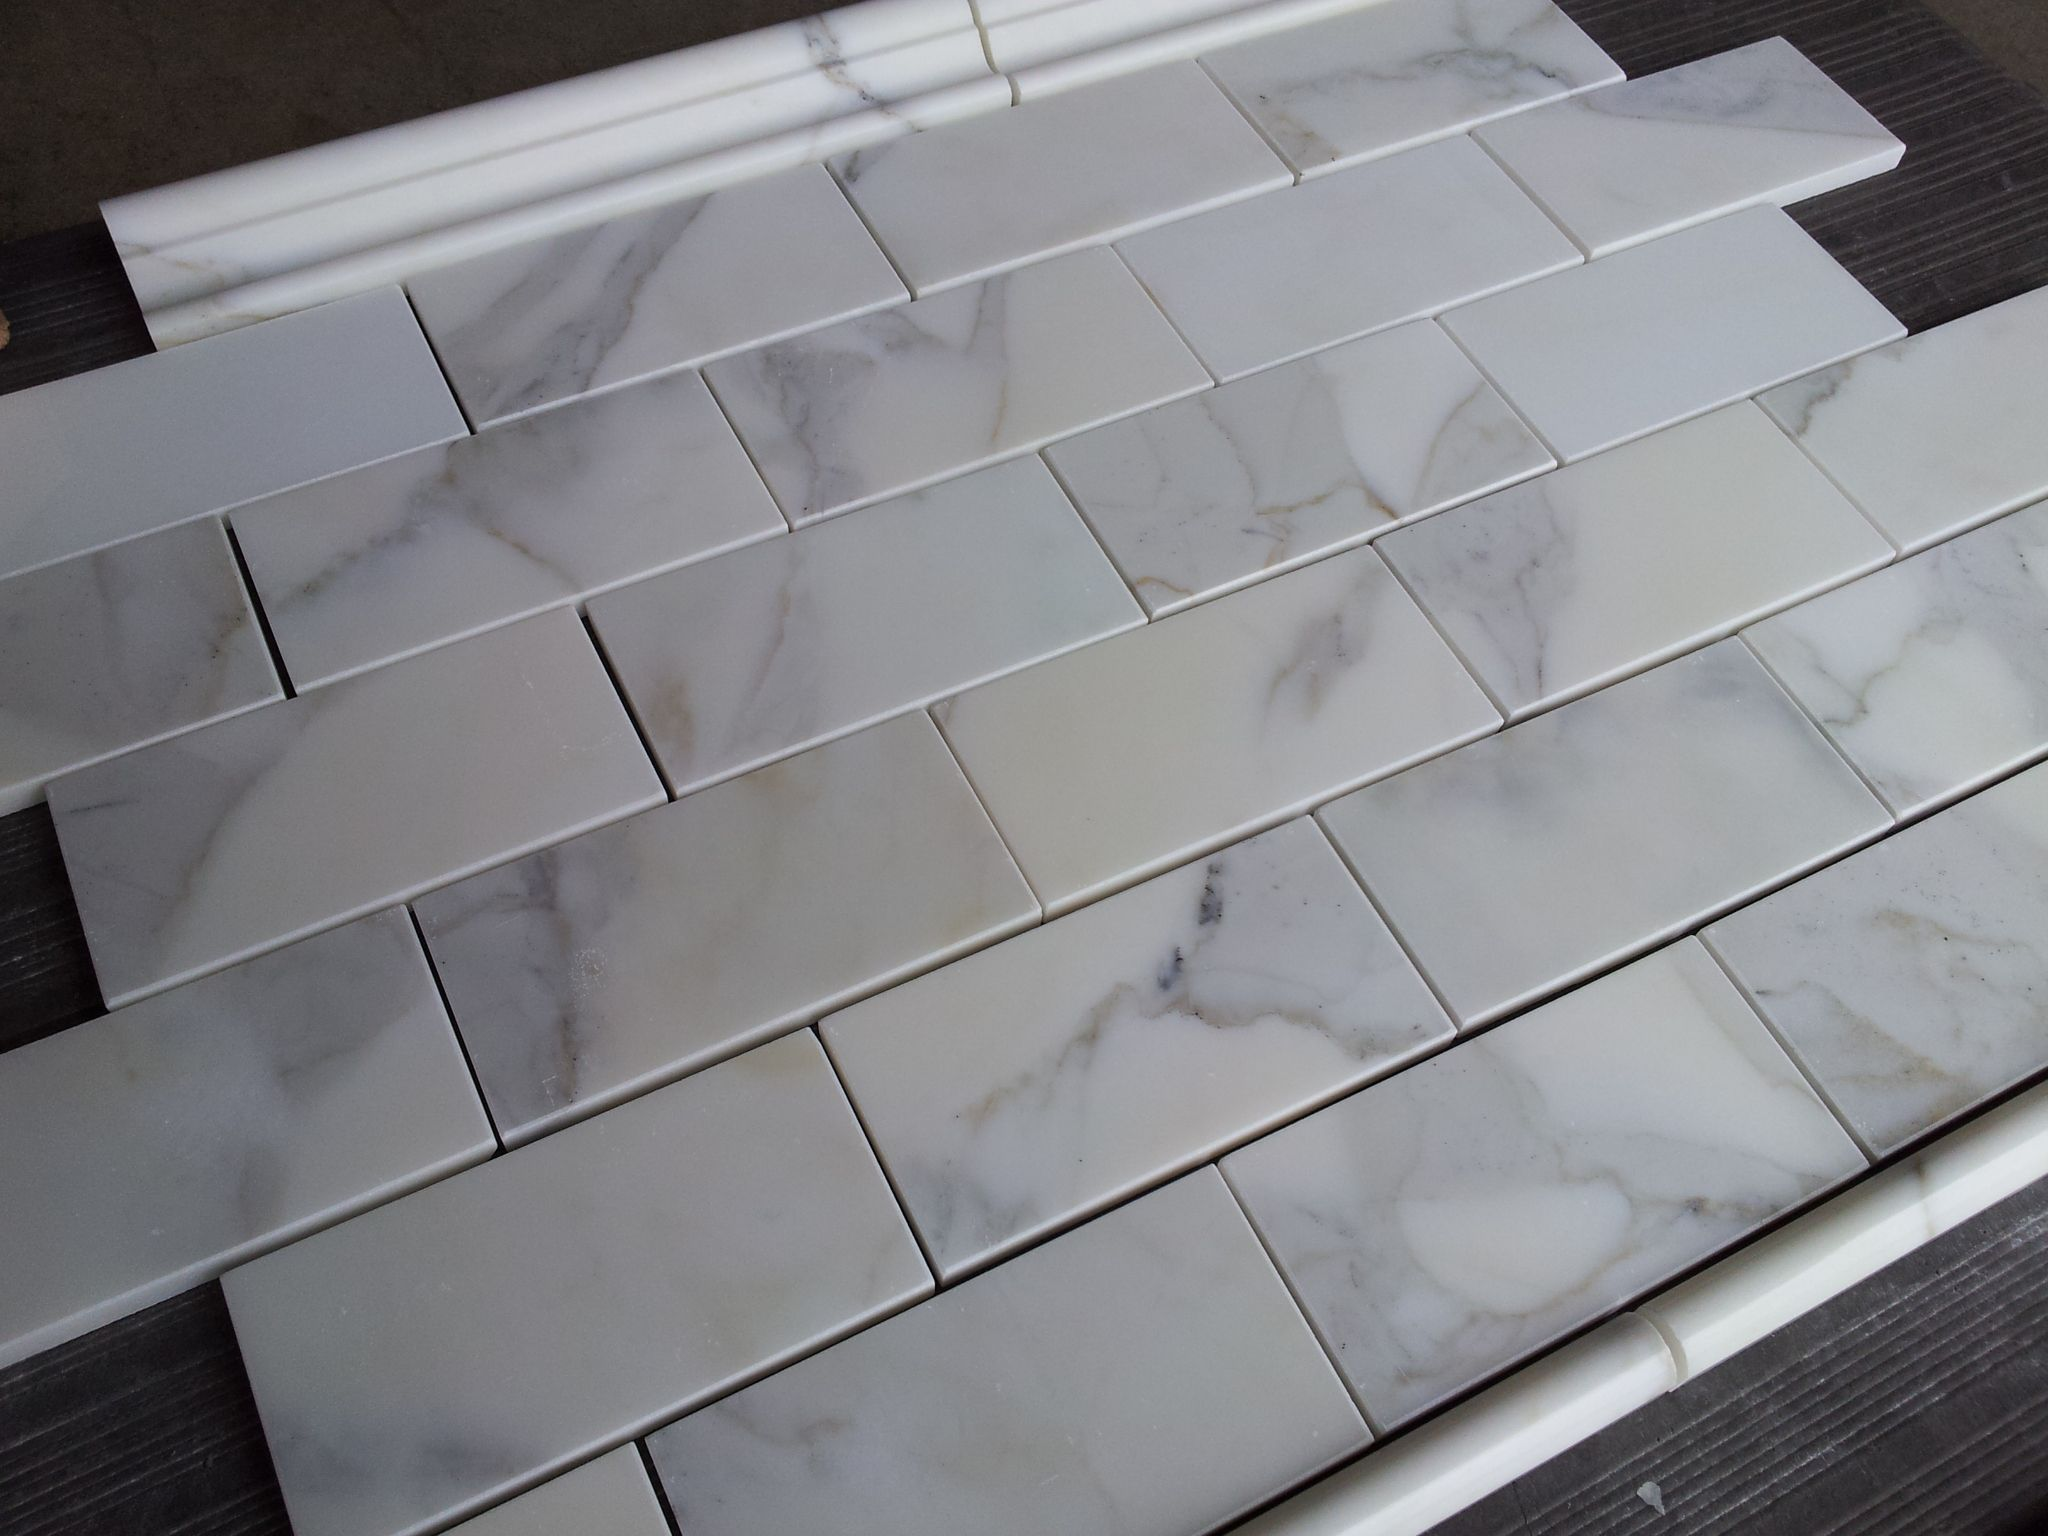 Calacatta 36 subway tile marble tiles marbles and subway tiles calacatta 36 subway tile dailygadgetfo Images